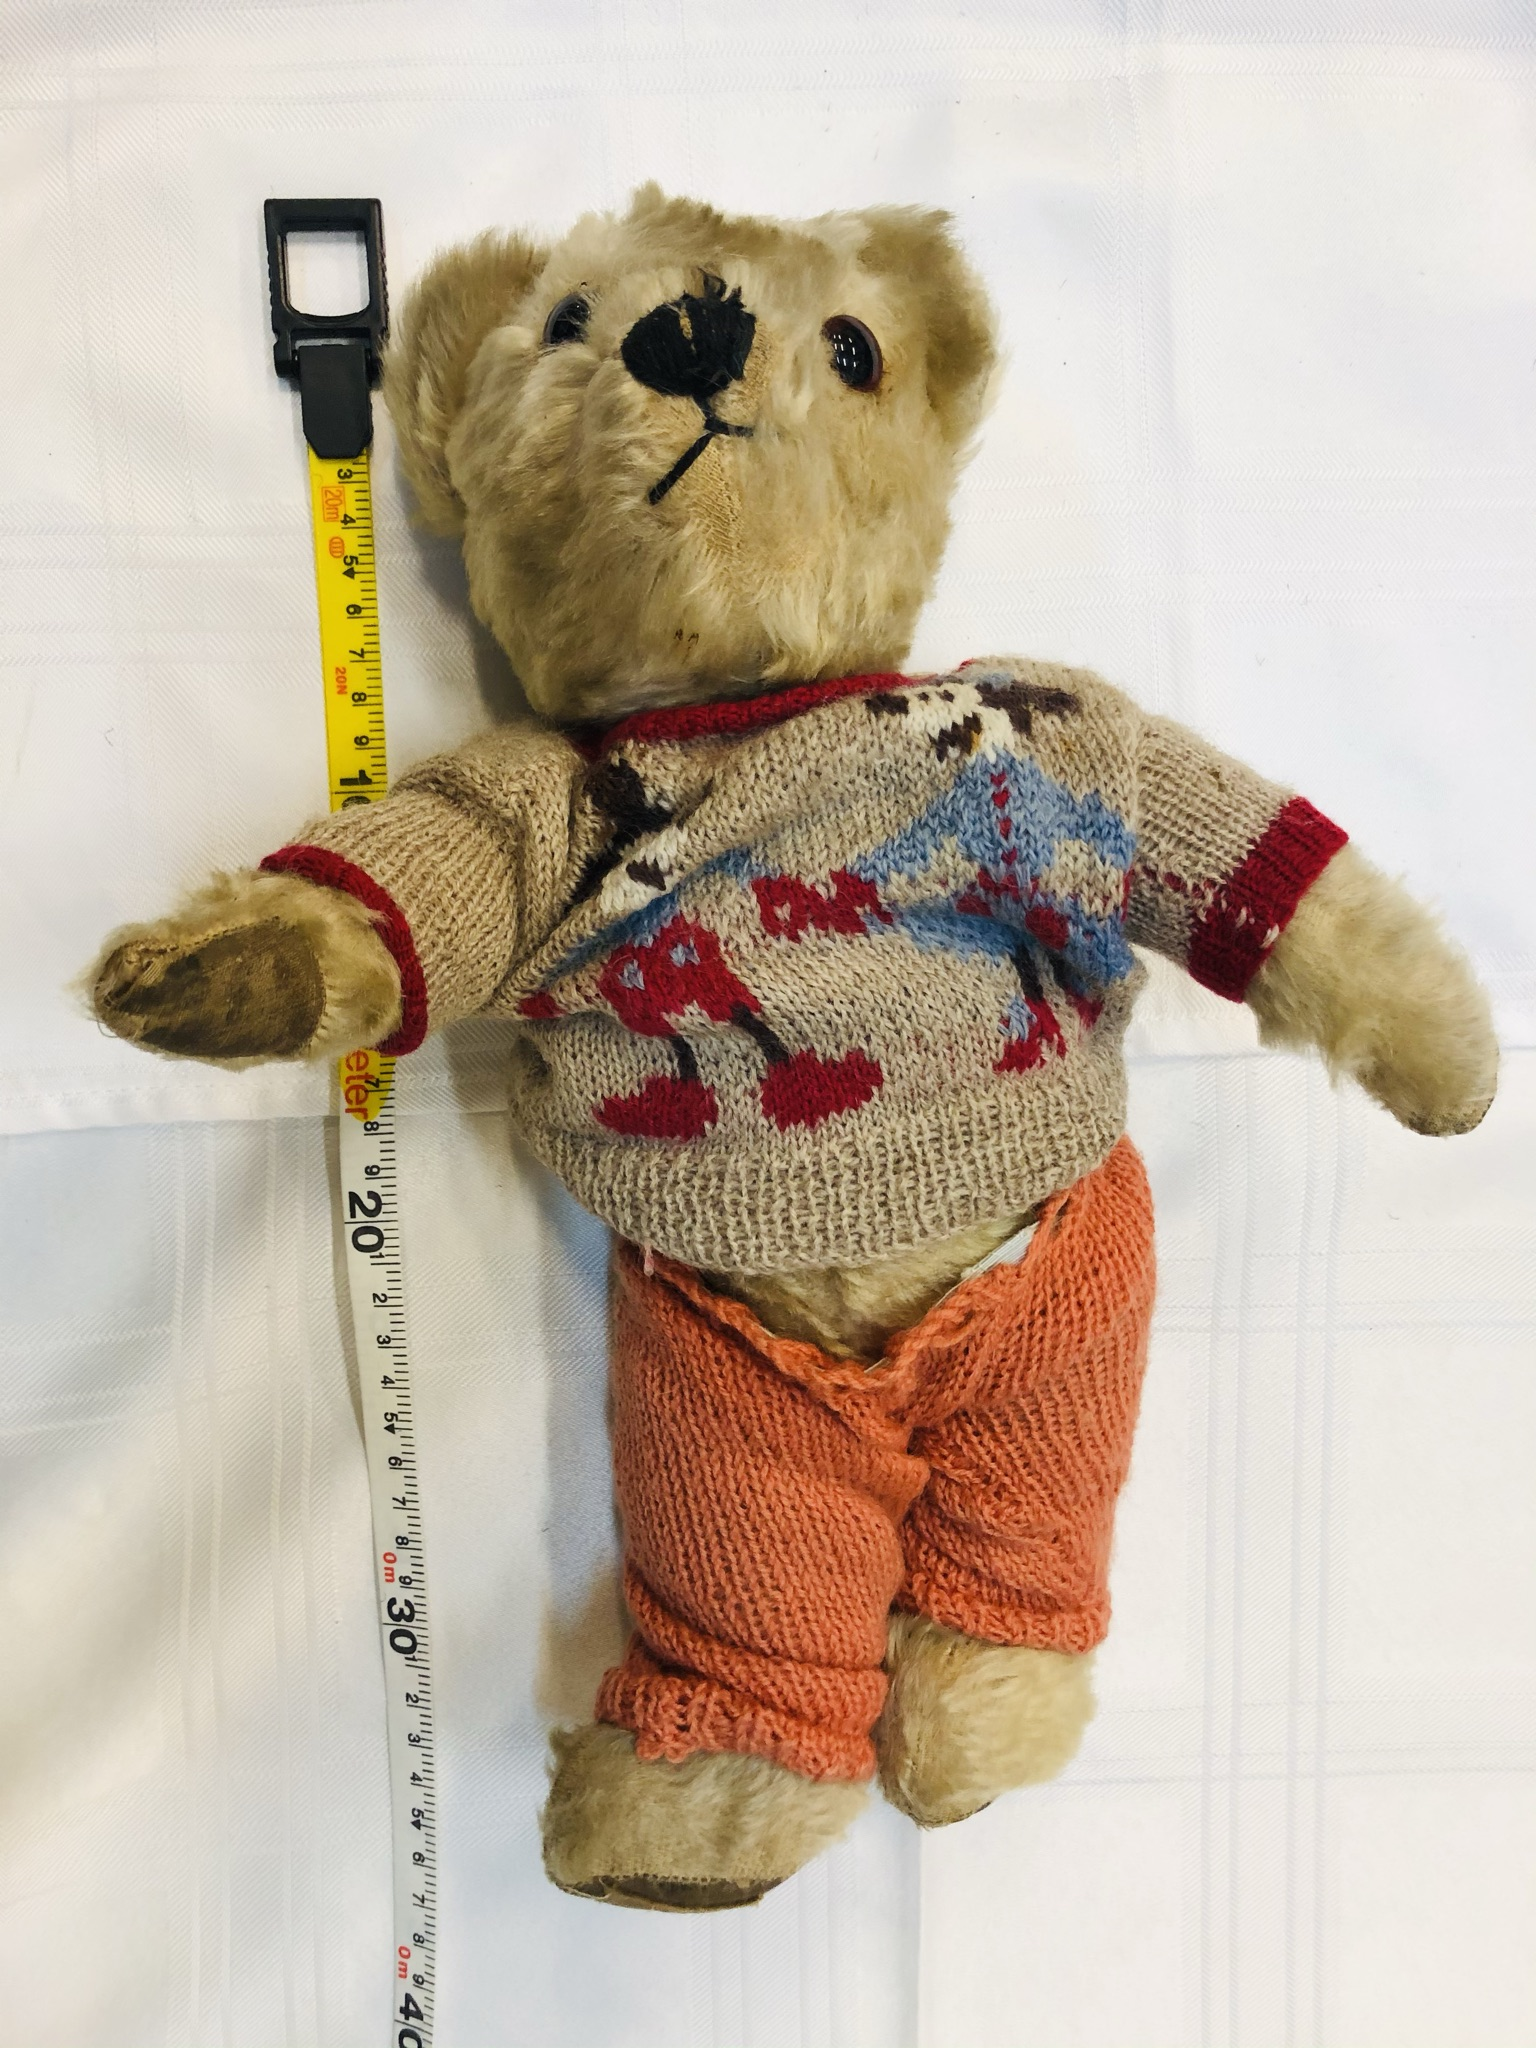 A splendid, Chad Valley Bear (with label) dressed in delightful hand made clothing. Handome chap. - Image 2 of 5